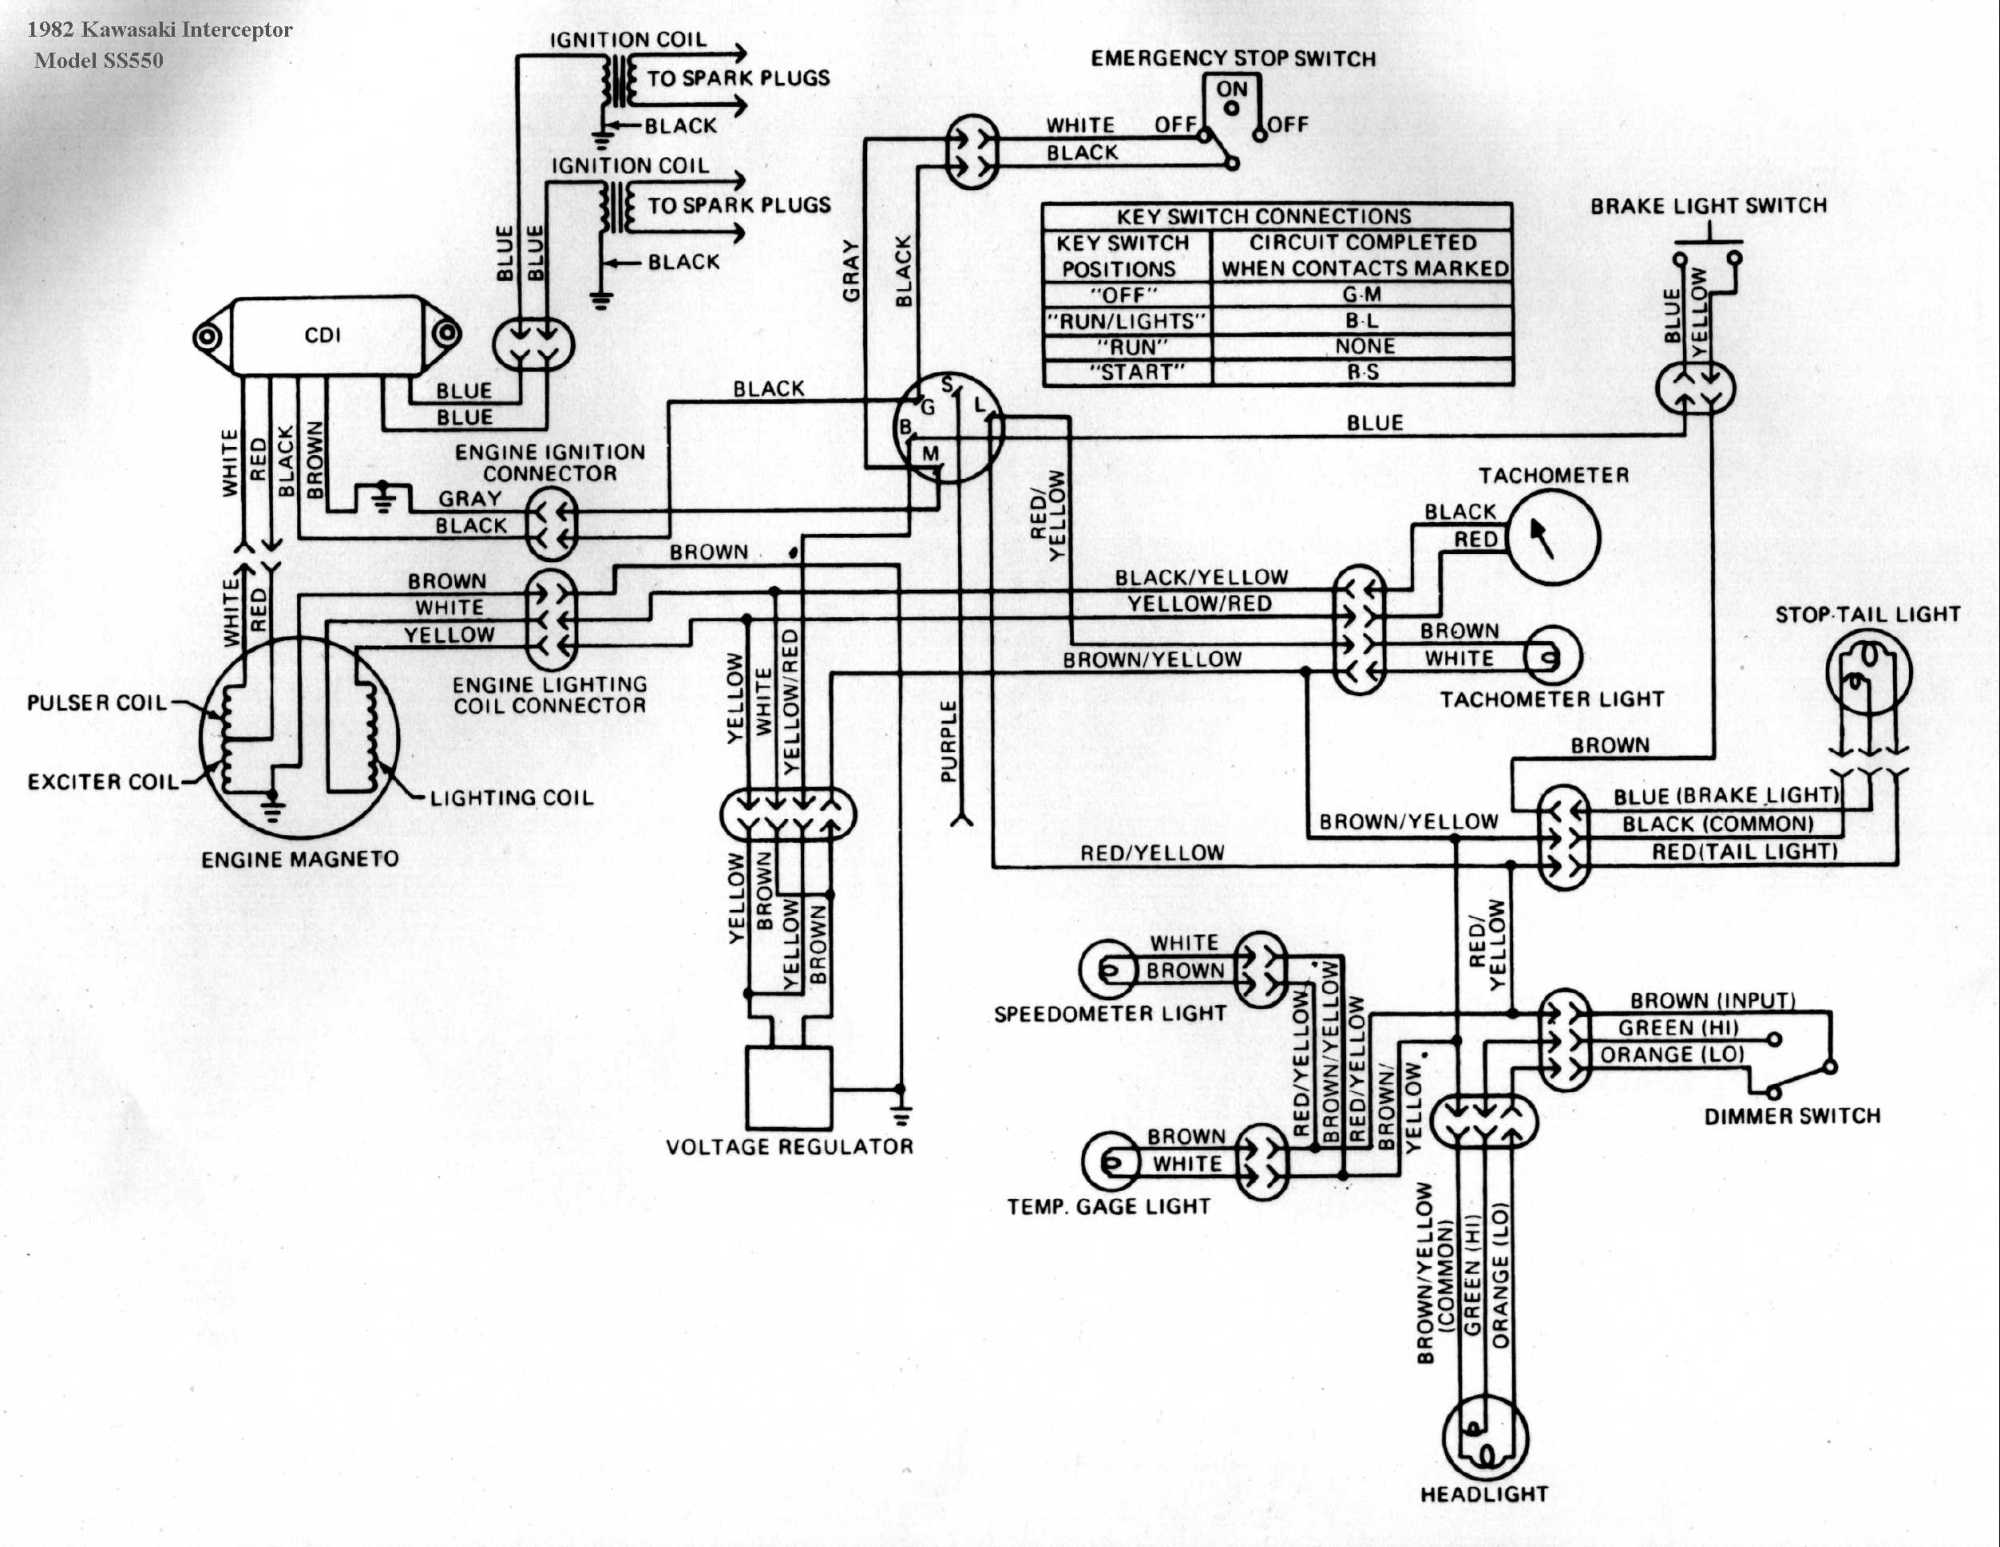 hight resolution of 1994 yamaha wr 250 wiring diagram wiring diagram 1994 wr 250 wiring diagram